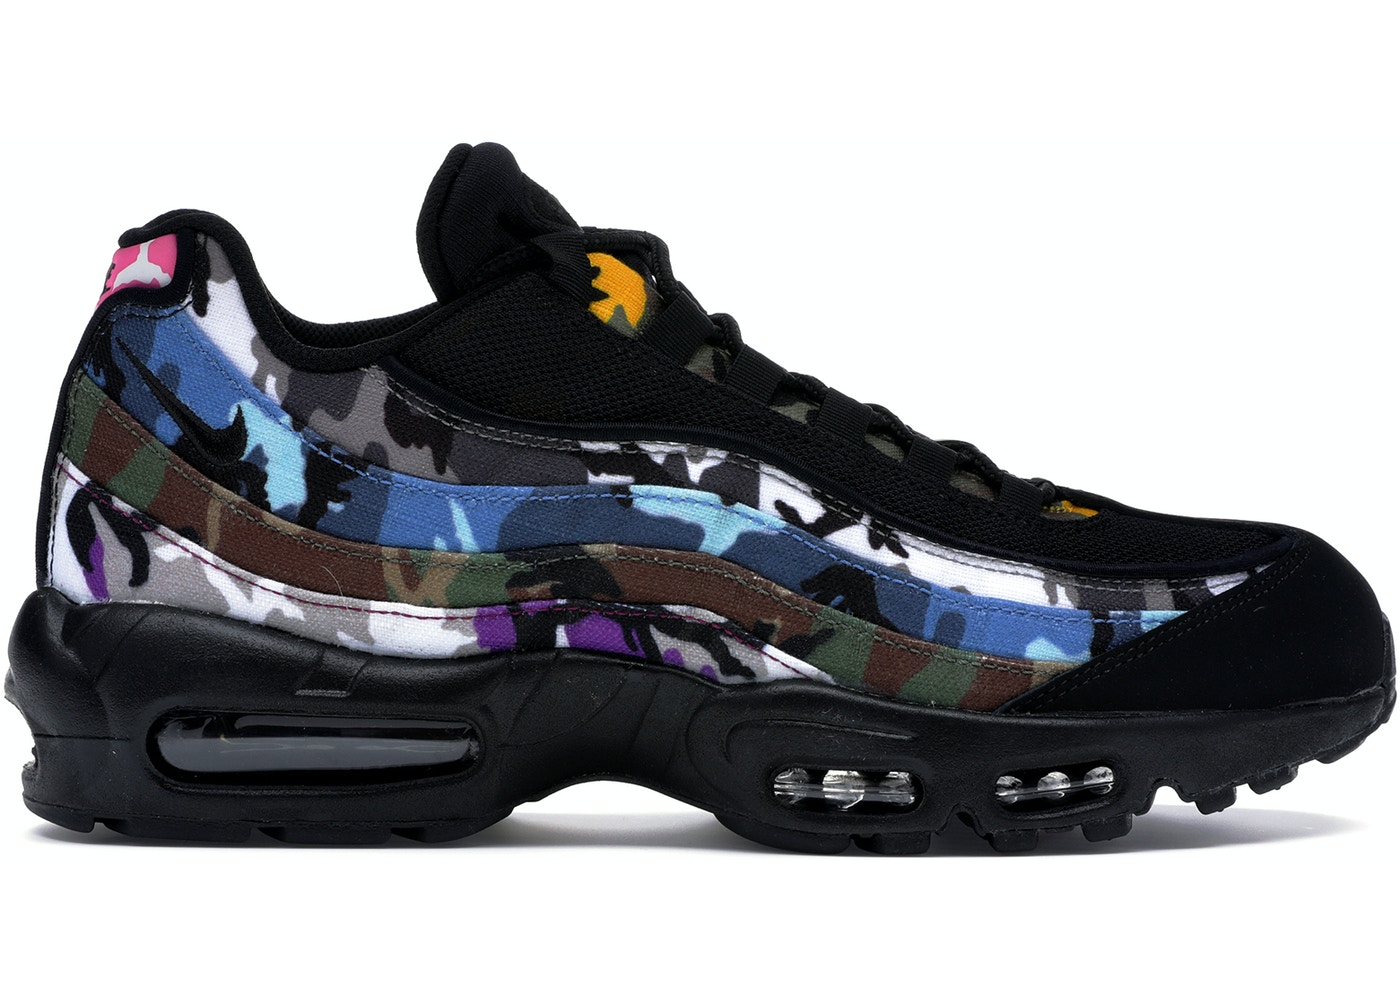 new styles 23b8b 4d93b Air Max 95 ERDL Party Black - AR4473-001